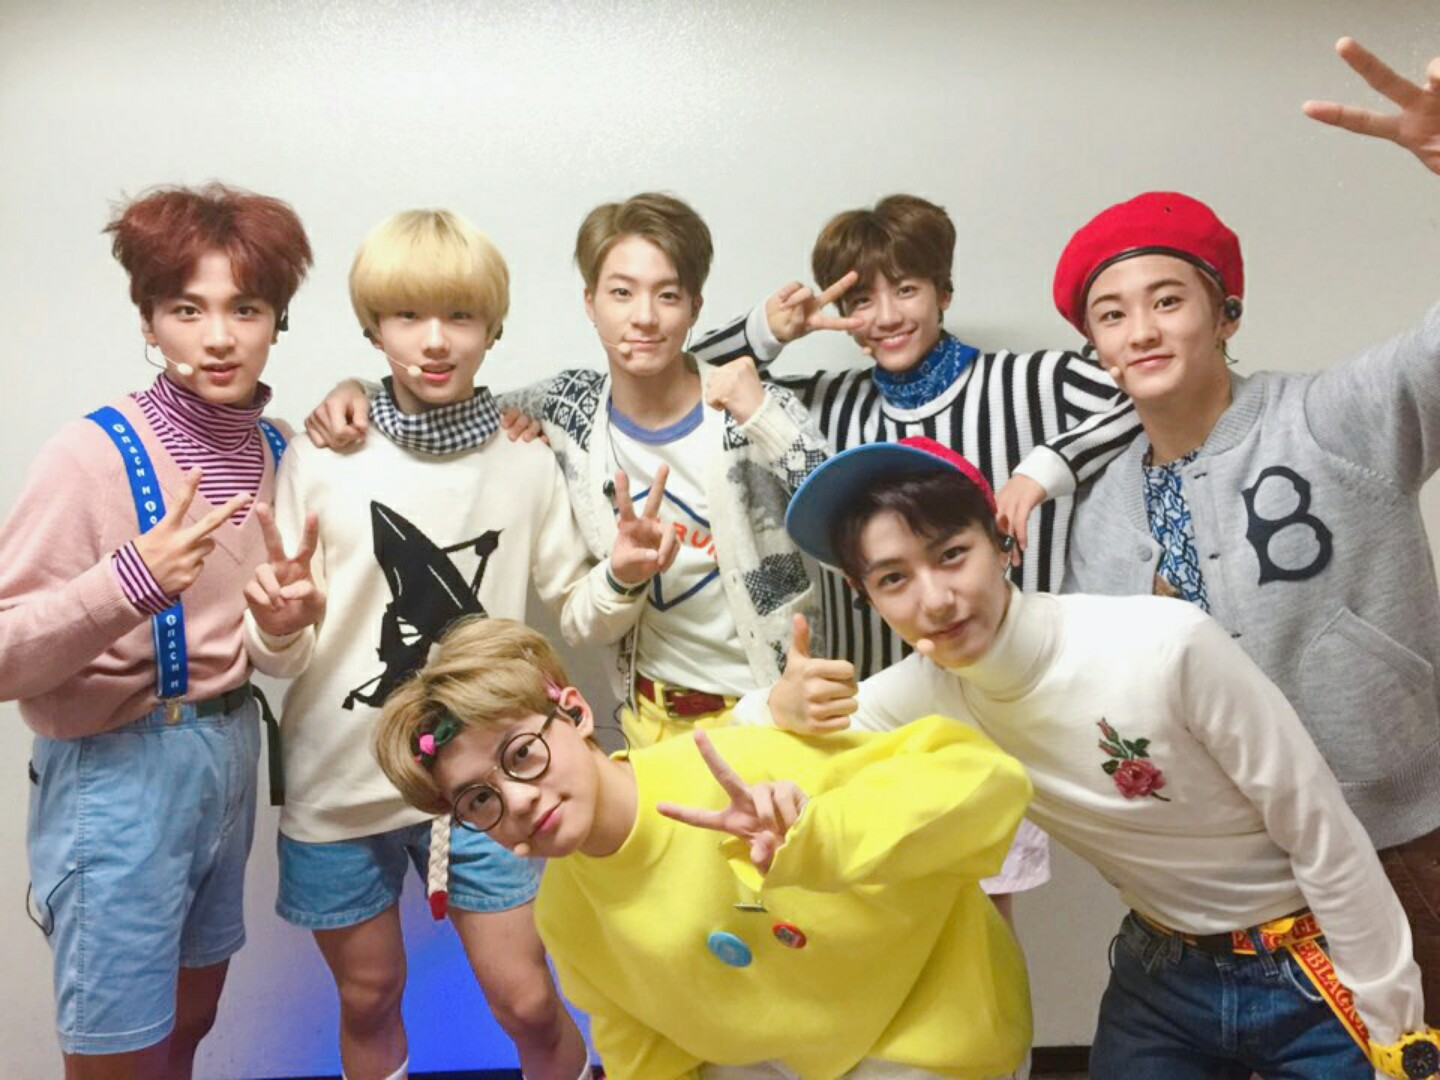 picture - 2016 09 23 [vyrl] nct dream | FromYesterday0214